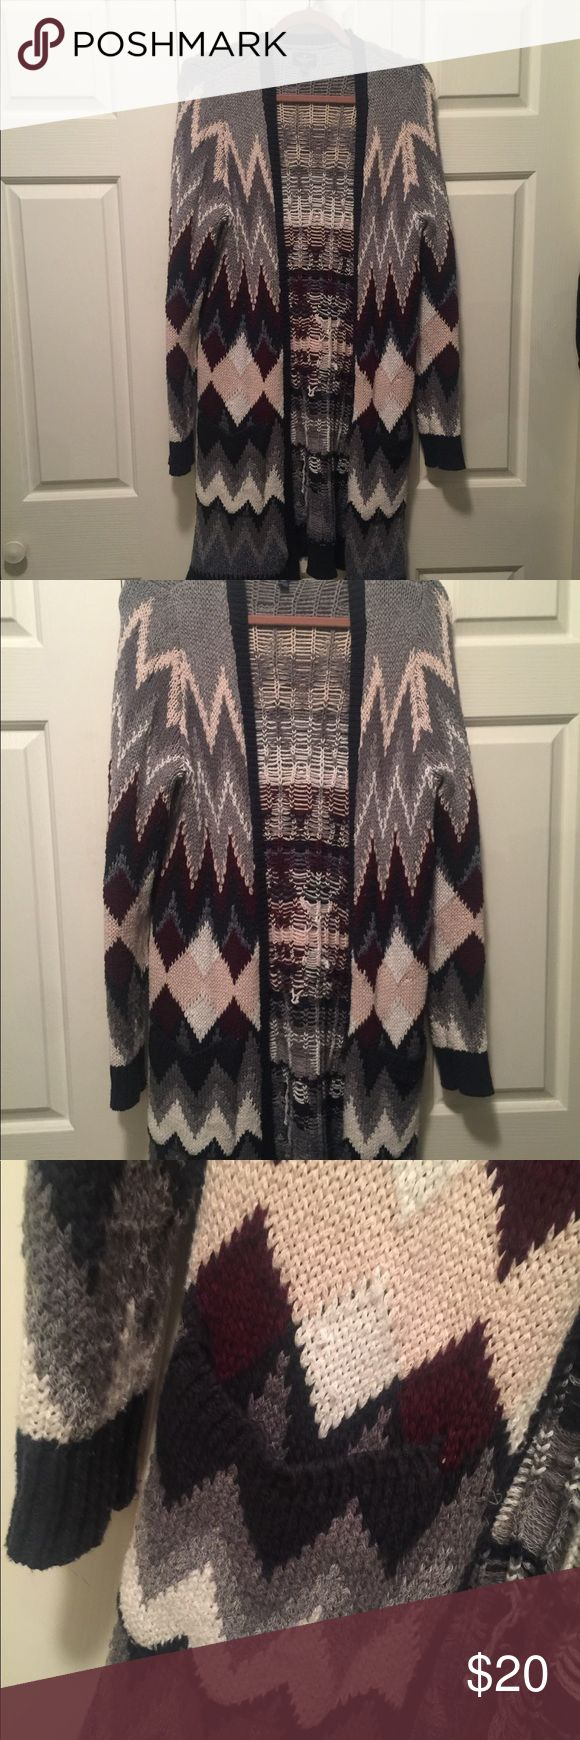 American Eagle multi color cardigan Beautiful multi color long cardigan sweater is a must have for cooler temperatures. Has pockets and is very heavy and well made. American Eagle Outfitters Sweaters Cardigans